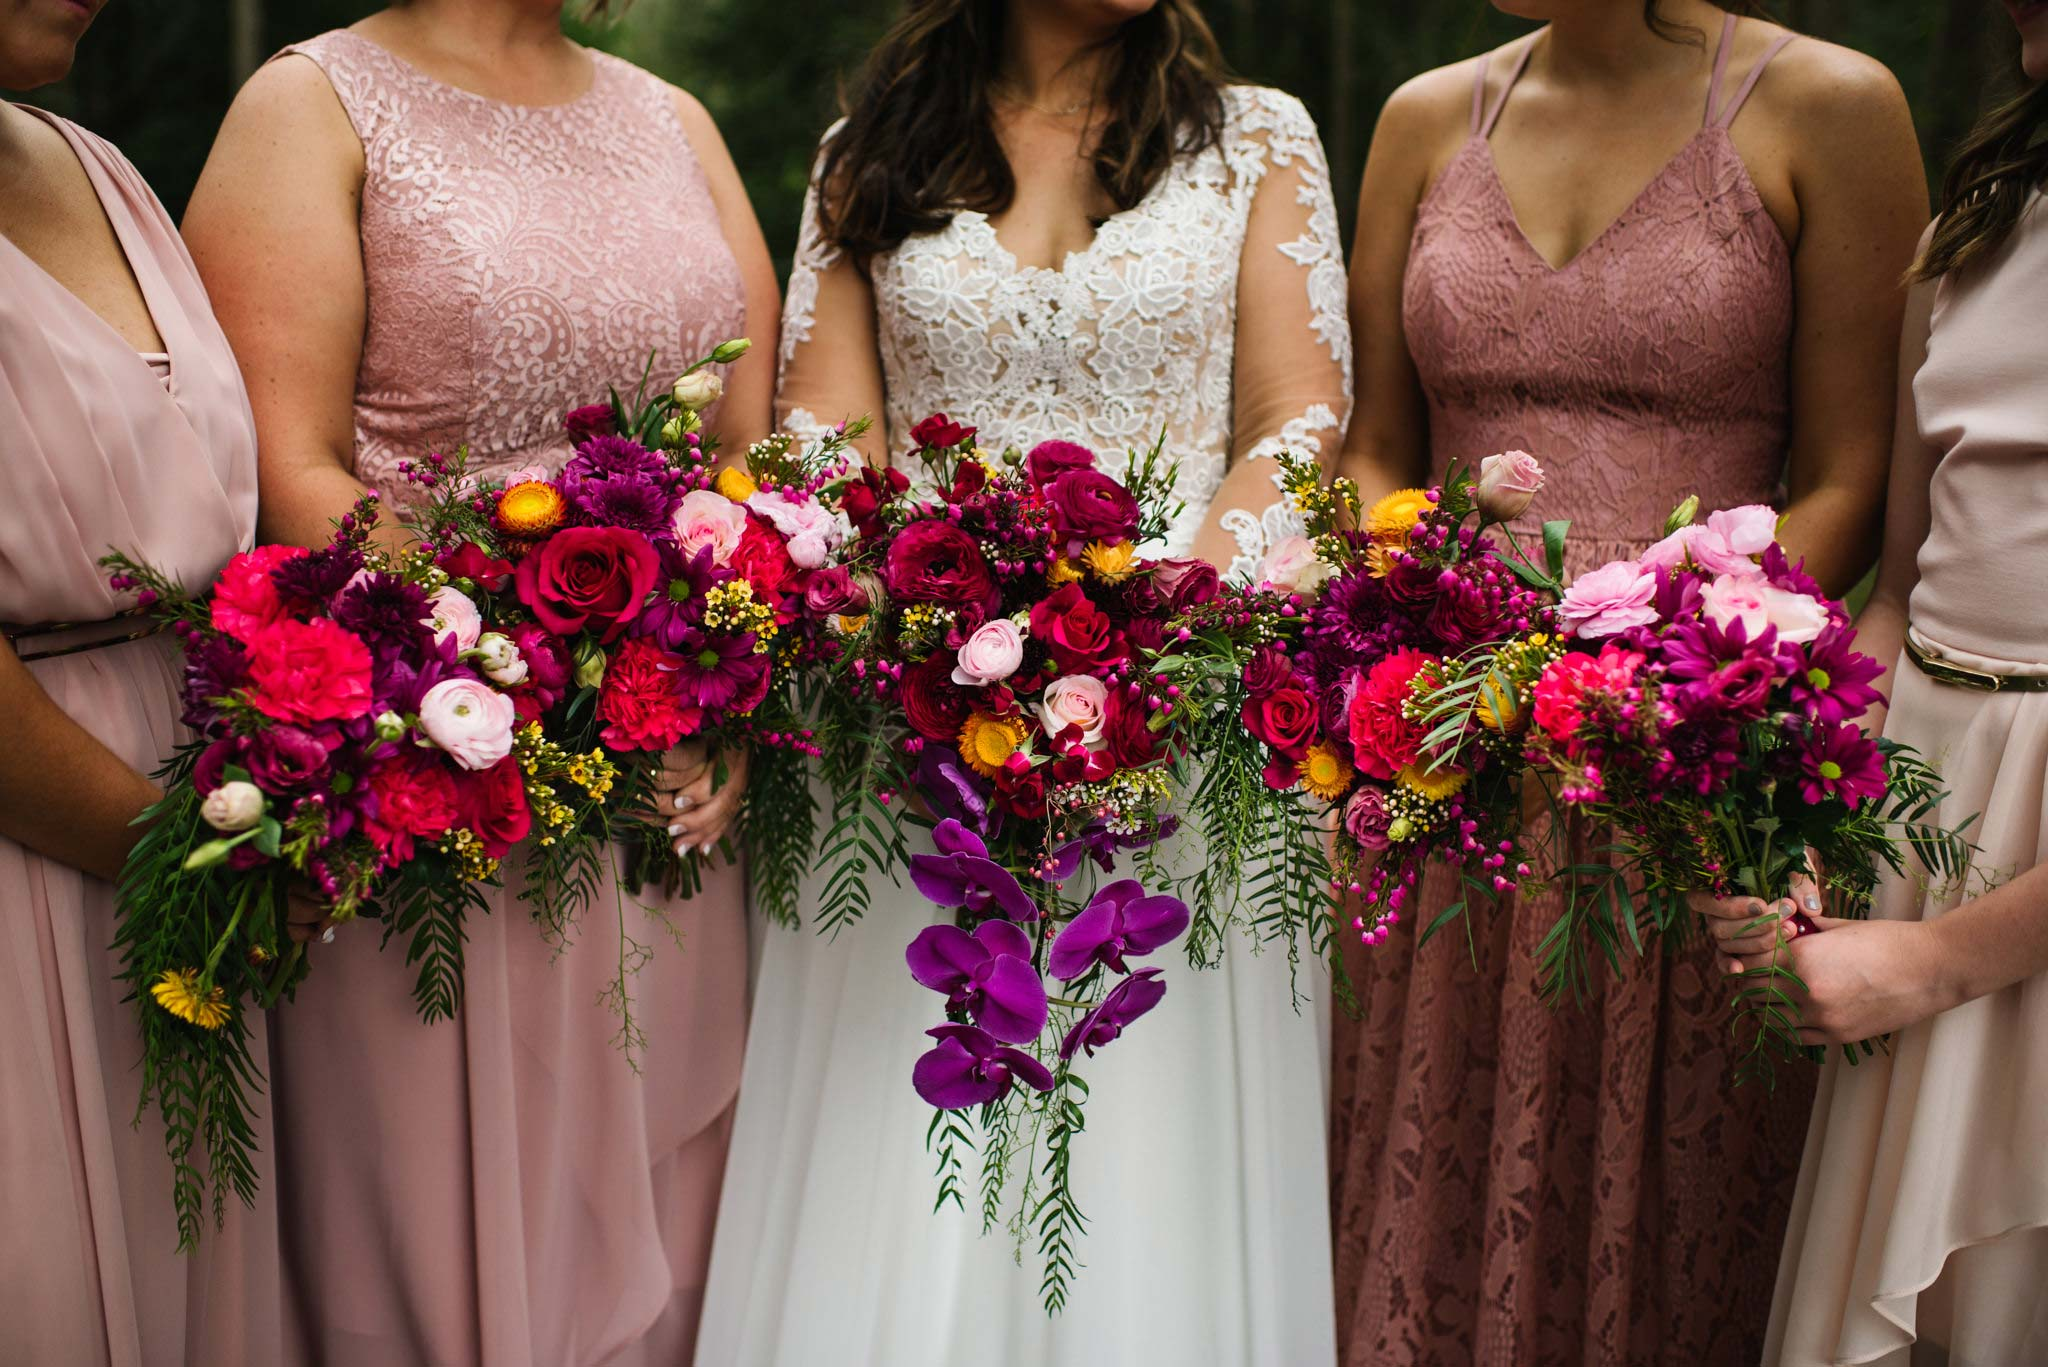 Colourful bouquets held by bride and bridesmaids